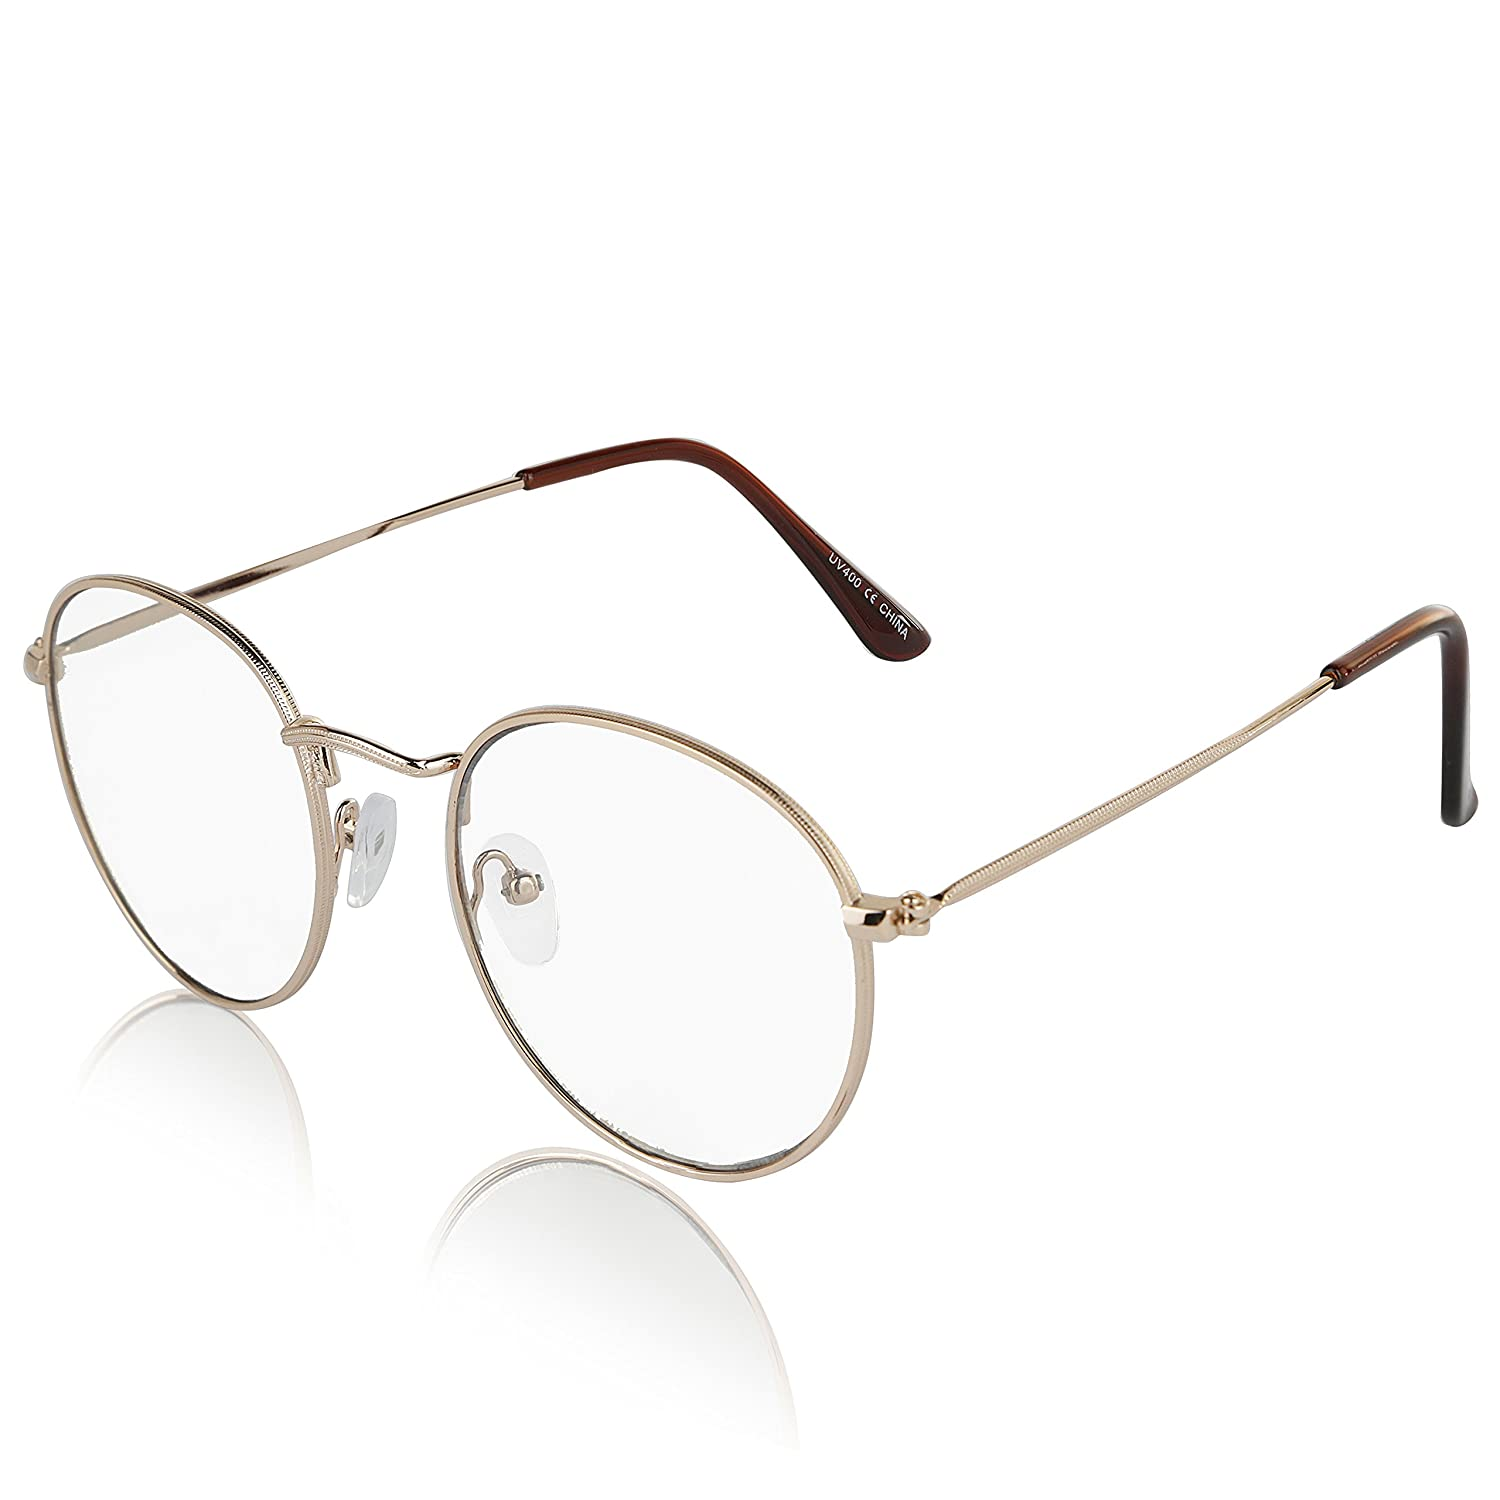 b8f150af3f Amazon.com  Non Prescription Retro Fake Clear Lens Gold Metal Frame  Eyeglasses Woman UV400  Clothing